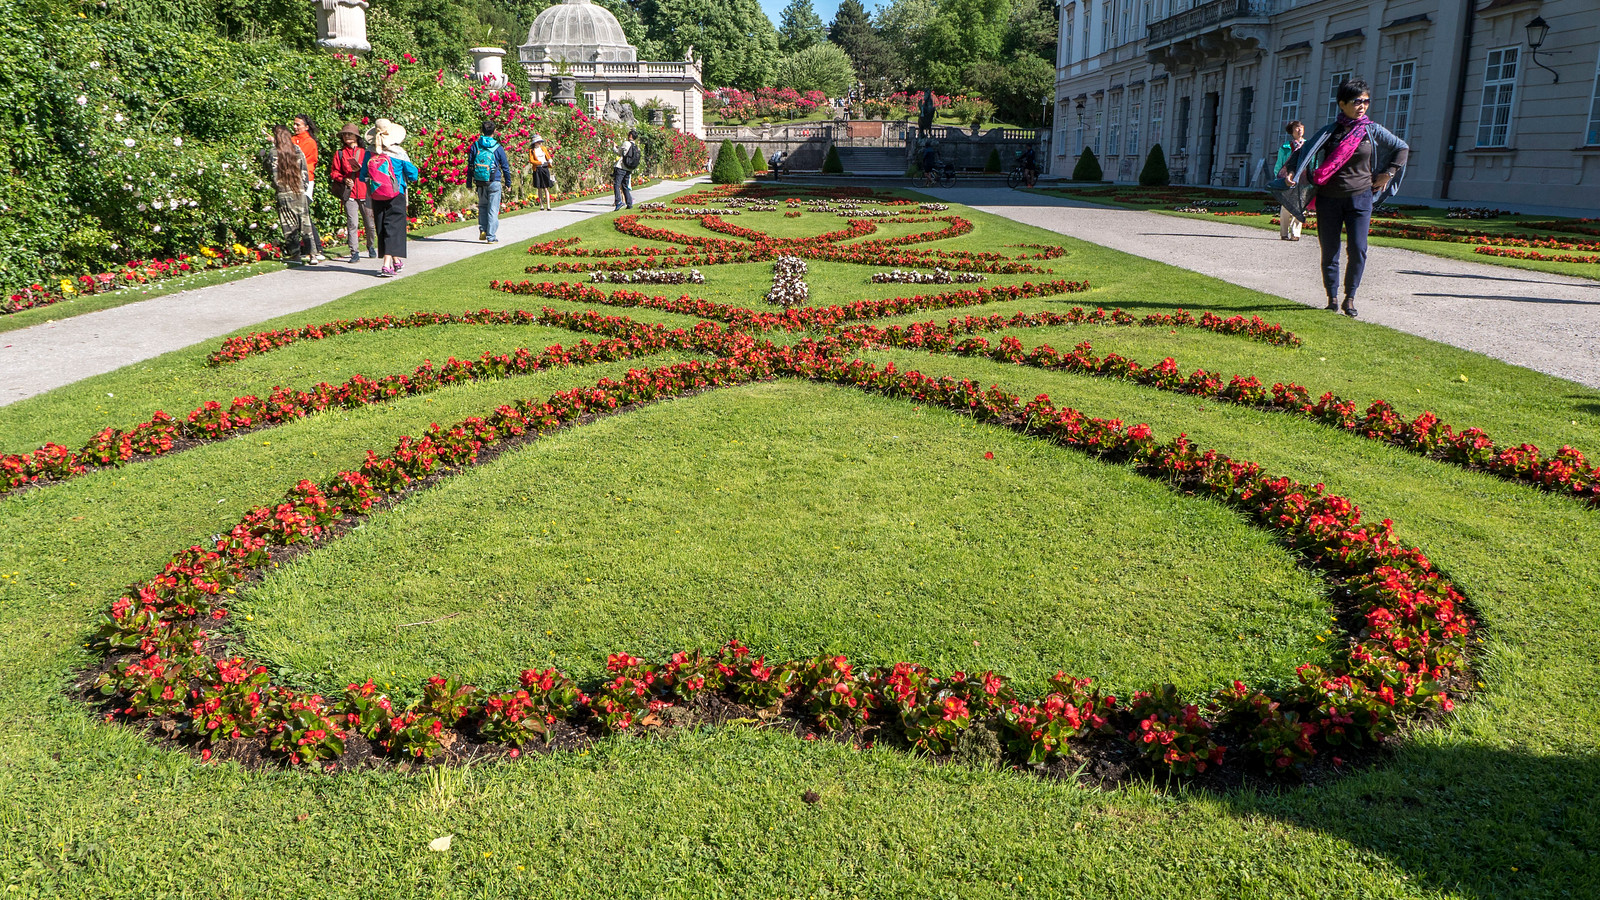 3 Days in Salzburg Itinerary - Mirabell Gardens and Palace